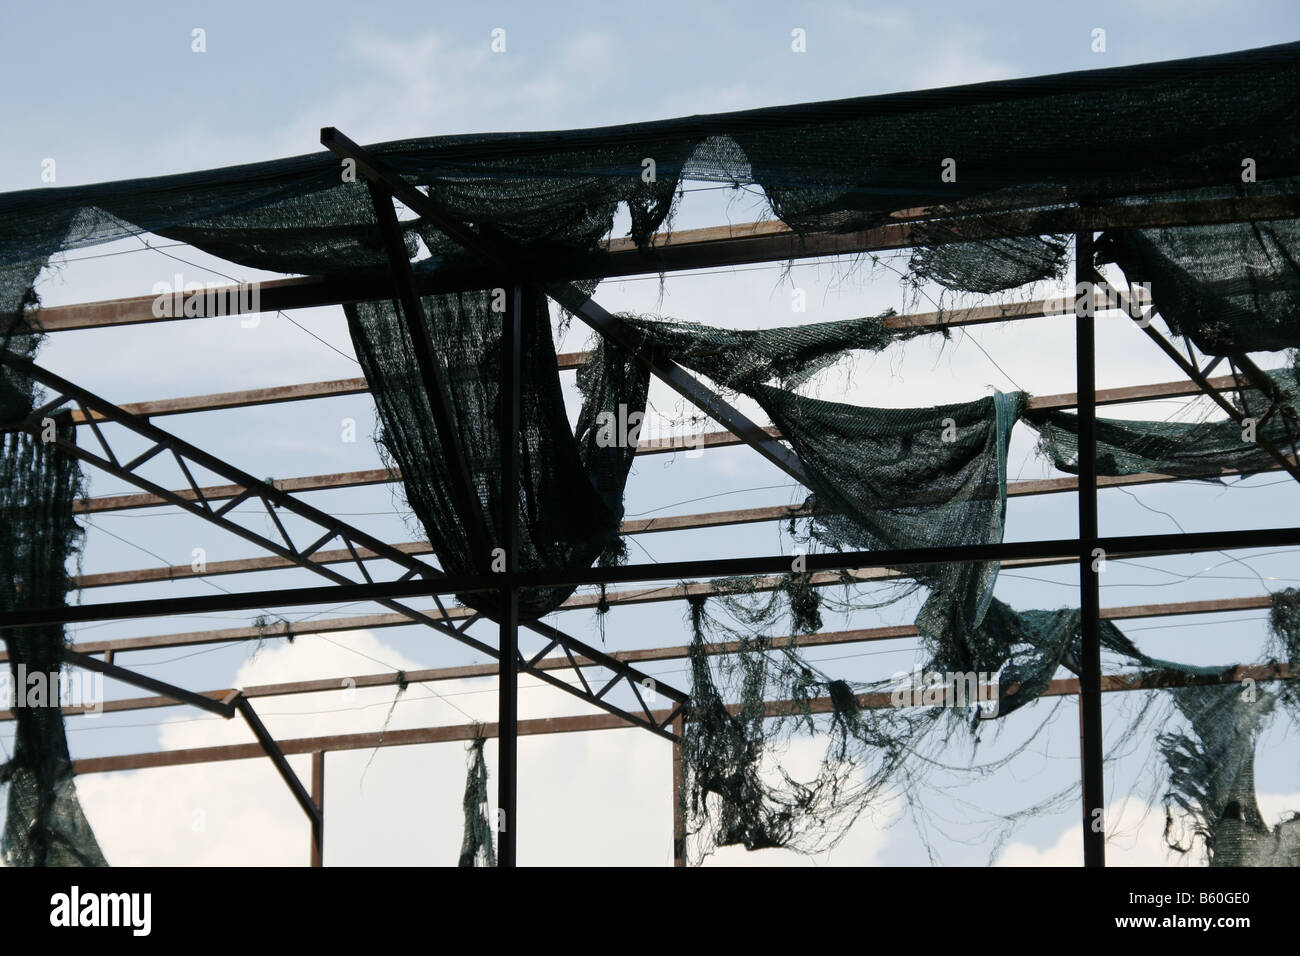 Stock Photo   Hanging Old Fabric On Roof Of Metal Scaffolding Structure  Outdoors In Sun